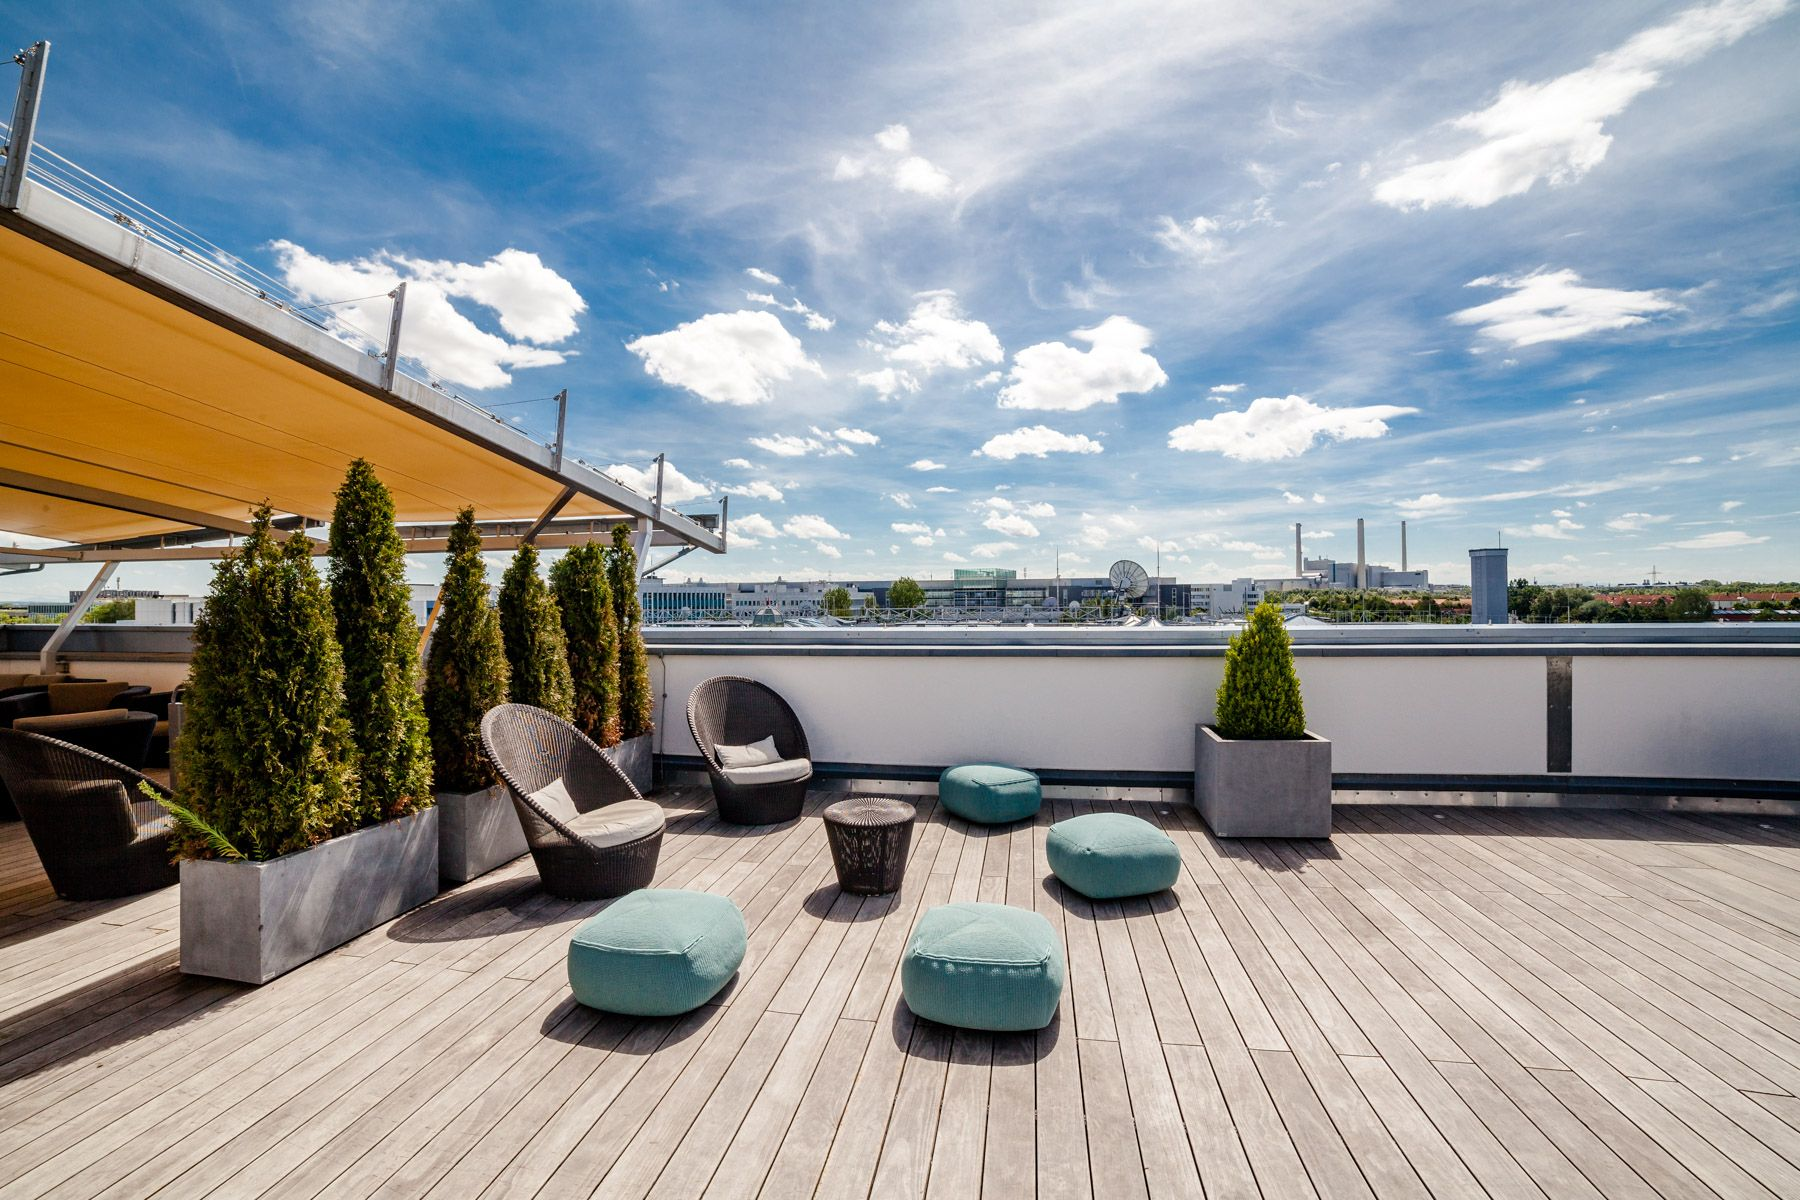 Rooftop Design Beauteous 7 Rooftop Deck And Terrace Designs For Your Next Commercial . Design Inspiration